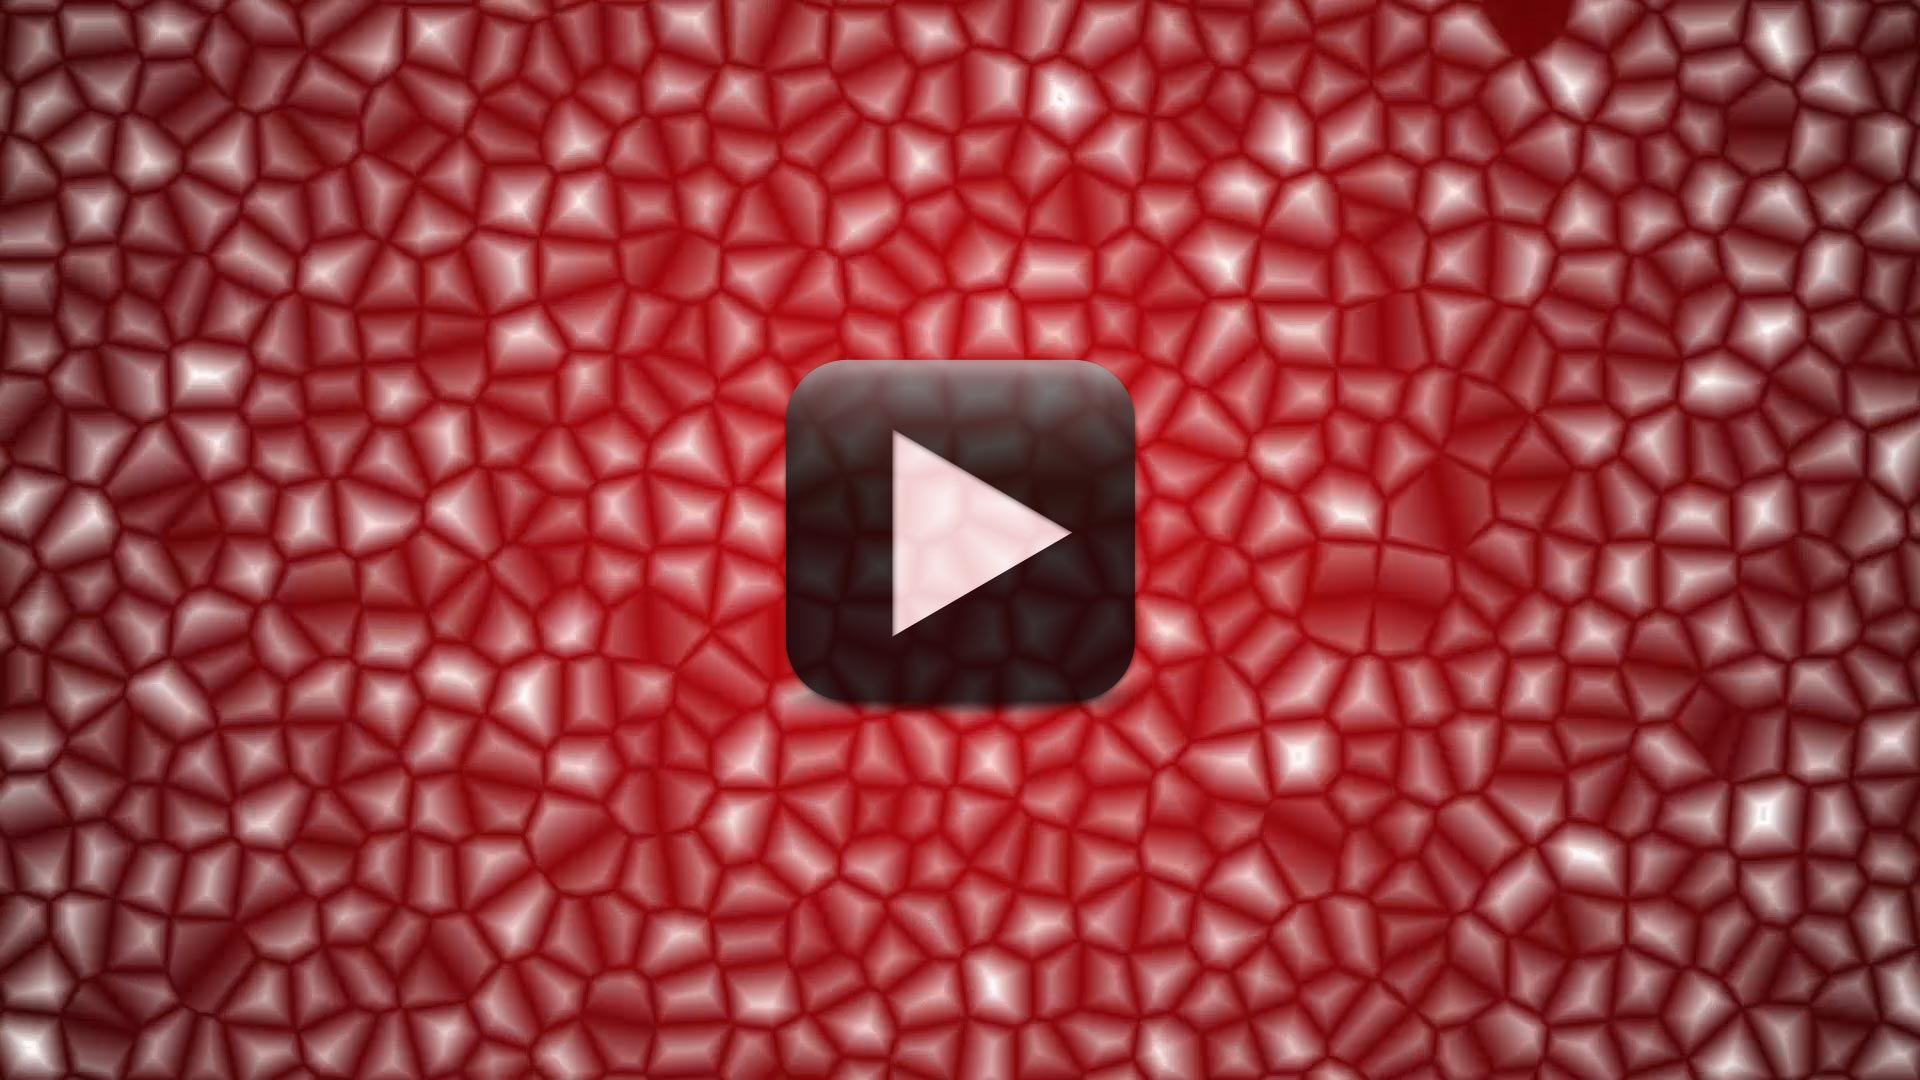 Background Video Effects of Crystals Cells Pattern